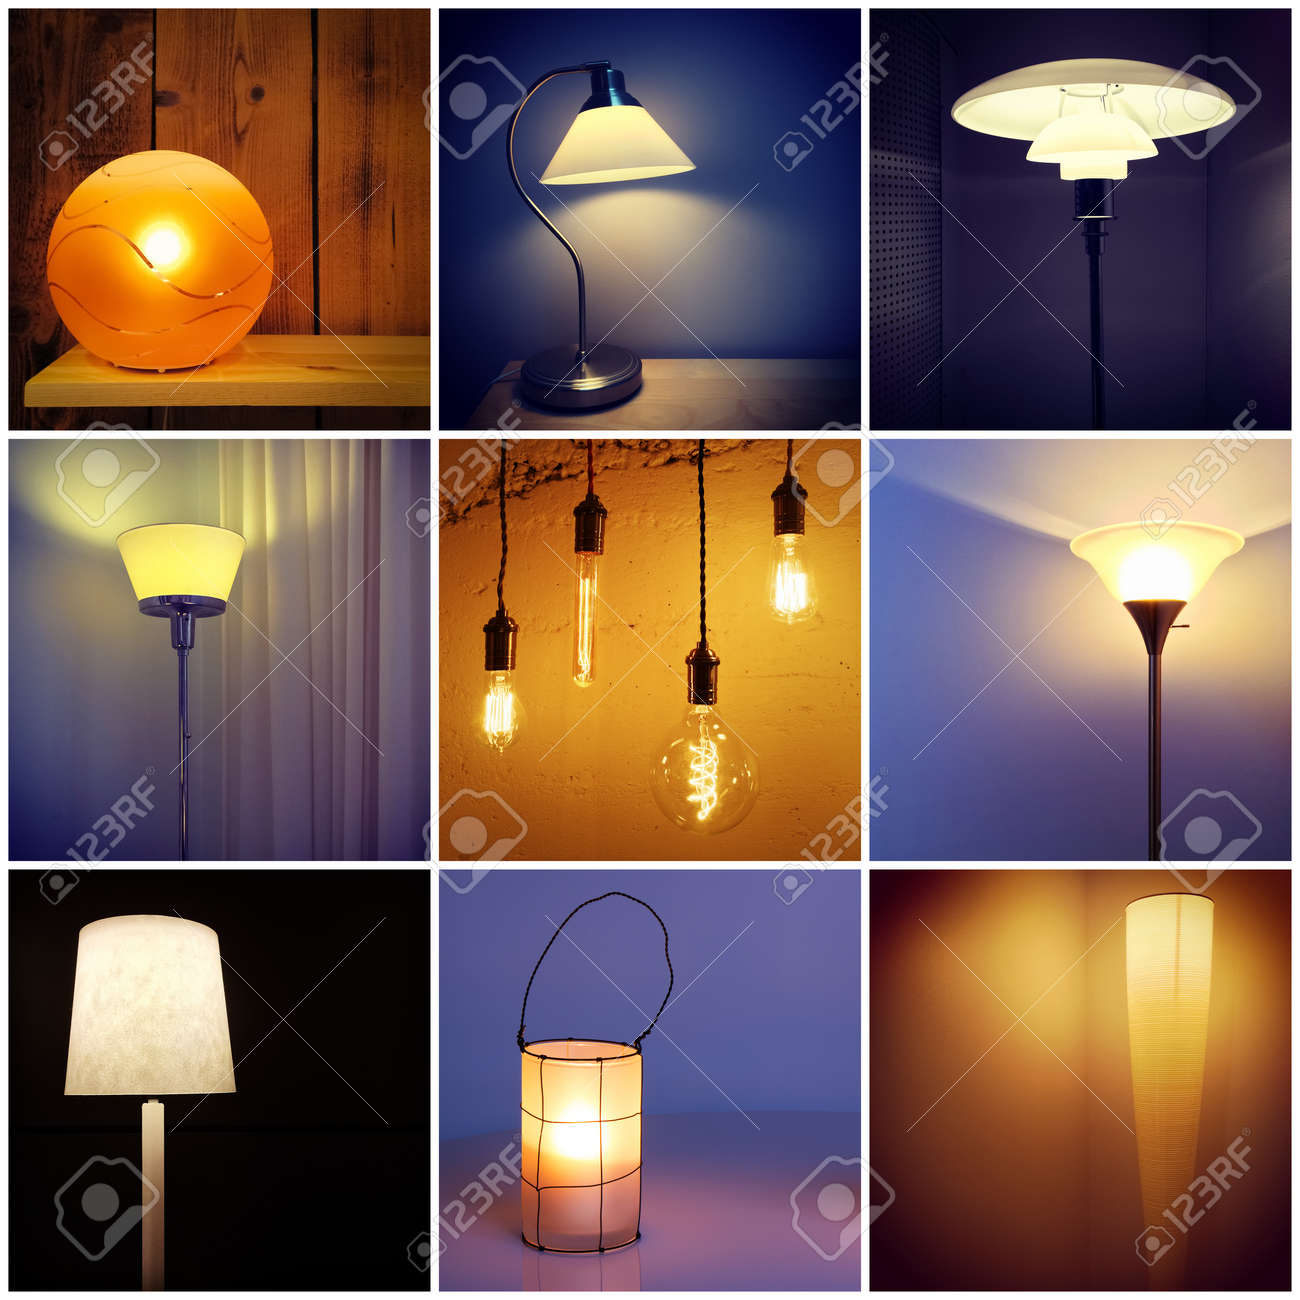 styles of lighting. different styles of modern lamps. decorative lighting. collage nine photos. stock photo lighting